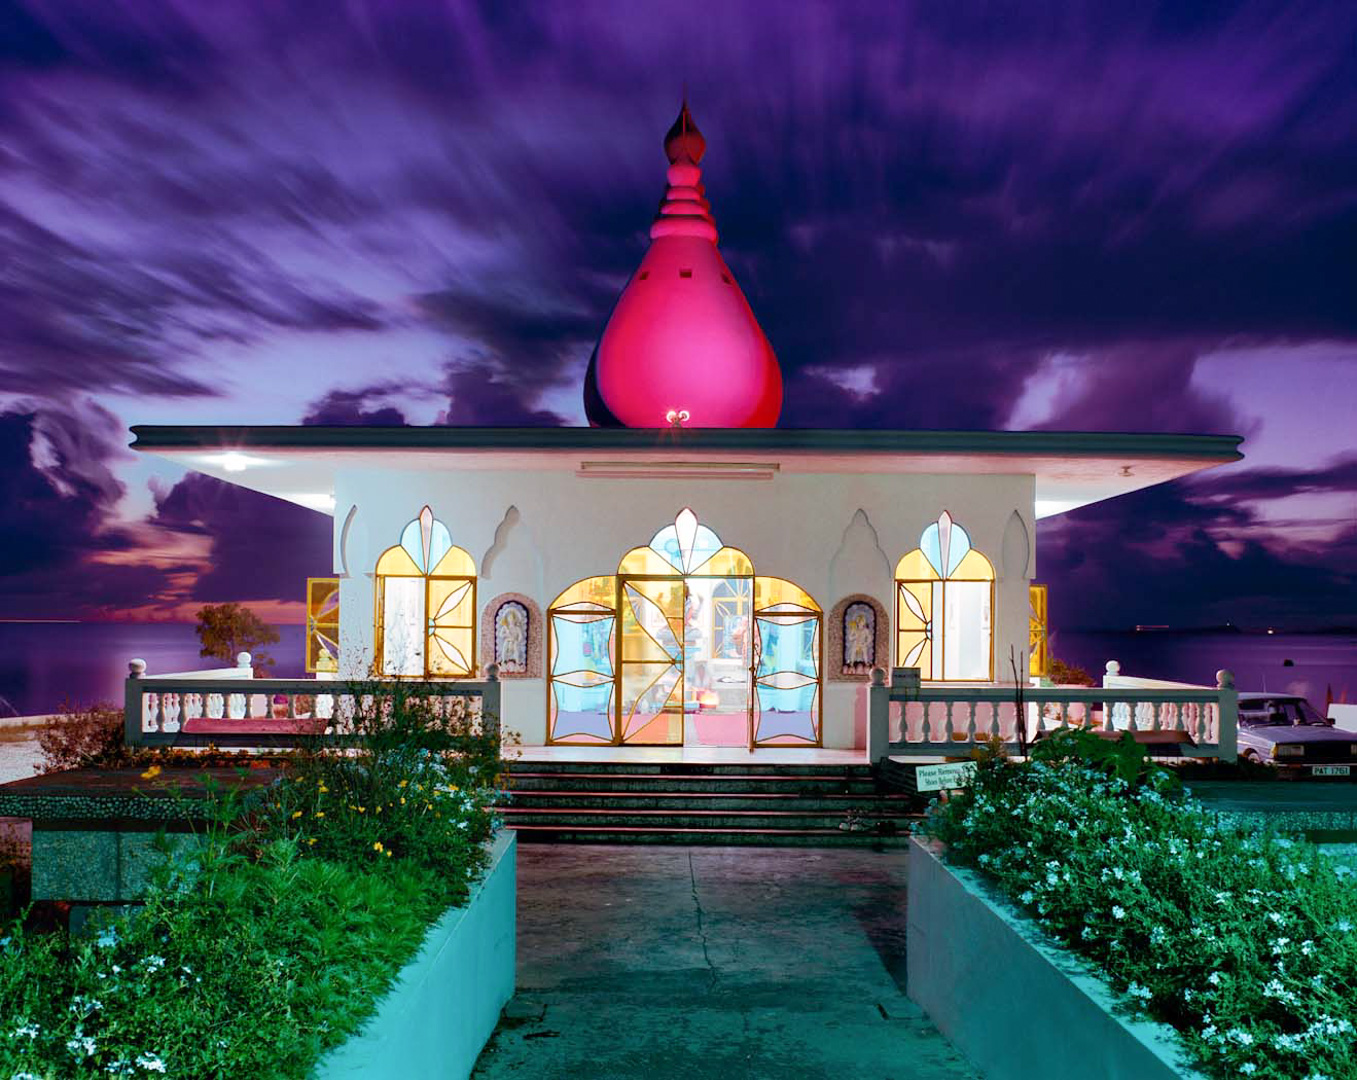 Photo: I made this photo with my Pentax 6x7 camera and a shift lens on a tripod using Kodak 160ASA film. Film is much less light sensitive than digital which means the dusk exposure took 15 minutes to expose at F11. During the long exposure the clouds were constantly moving directly behind the Hindu Temple. Combined with the multiple lights sources that cannot be recorded as neutral white light on one exposure, the results are a very colorful surreal photograph with great motion in the sky.